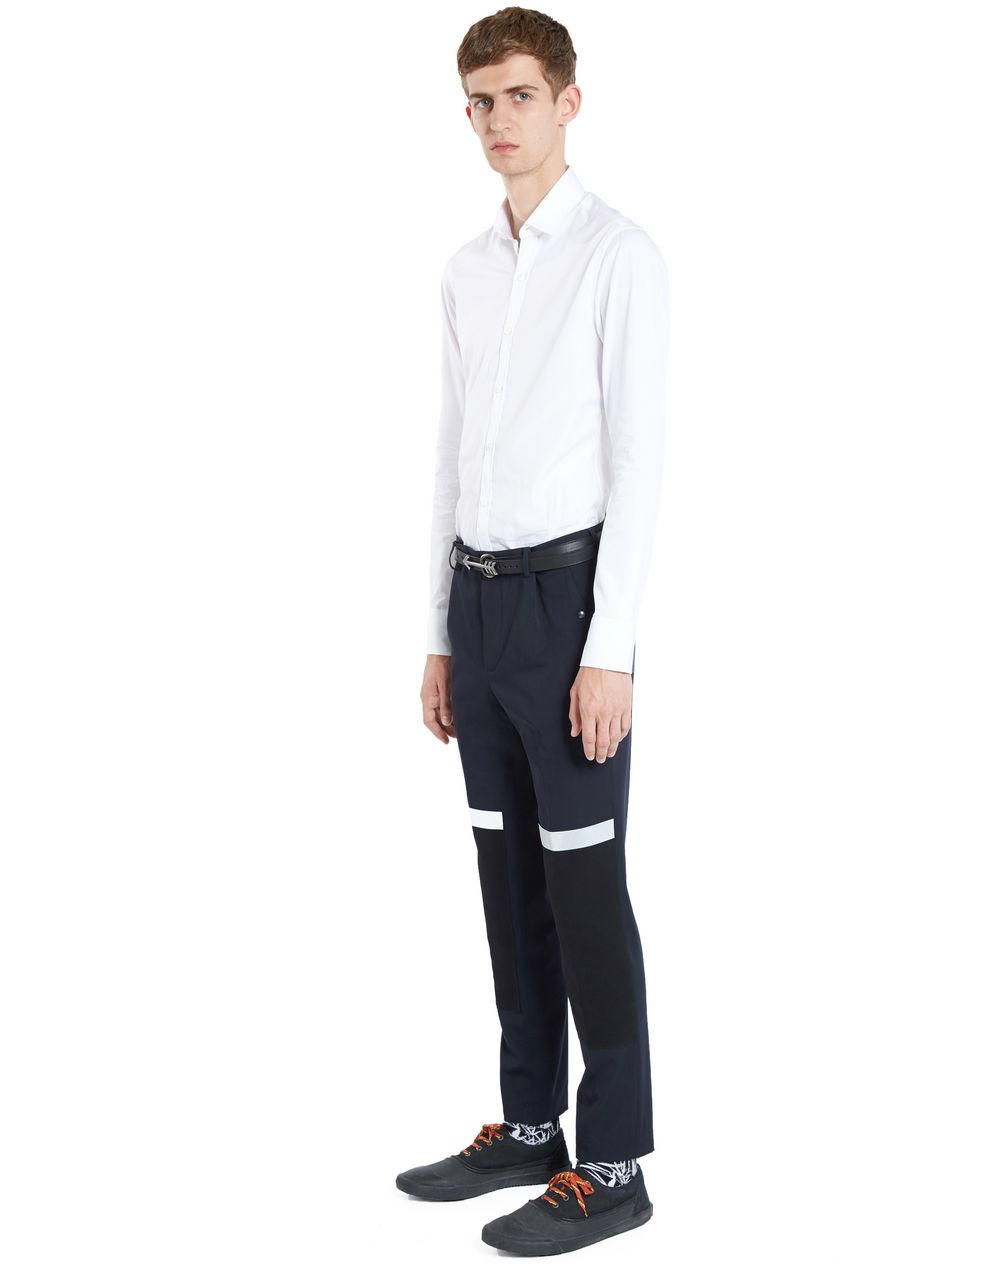 SLIM-FIT TROUSERS WITH REFLECTIVE PATCHES - Lanvin